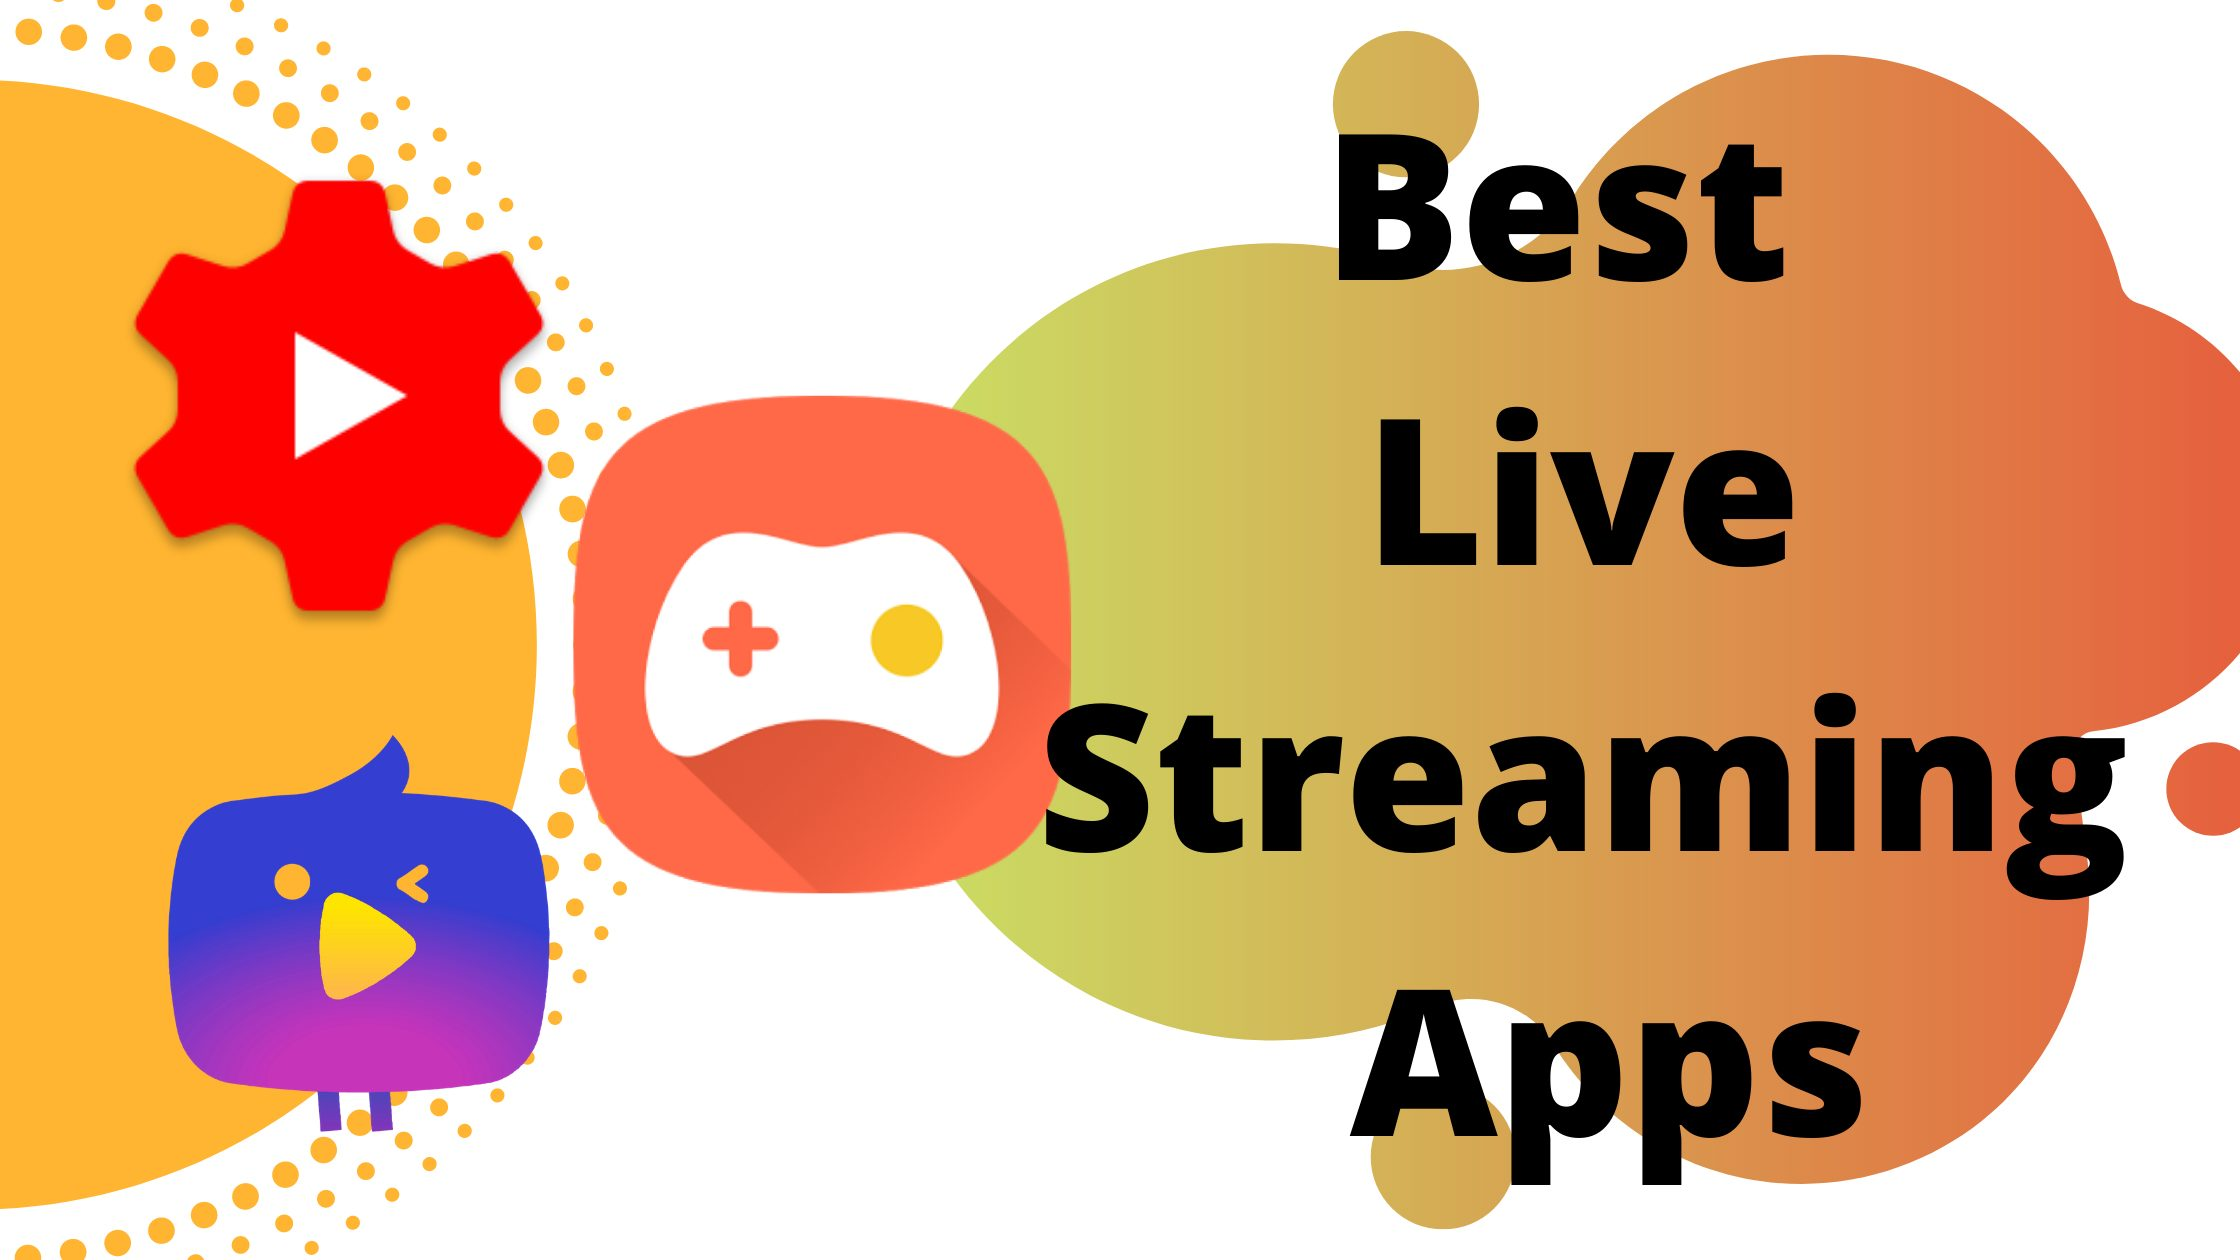 Best Live Streaming Apps